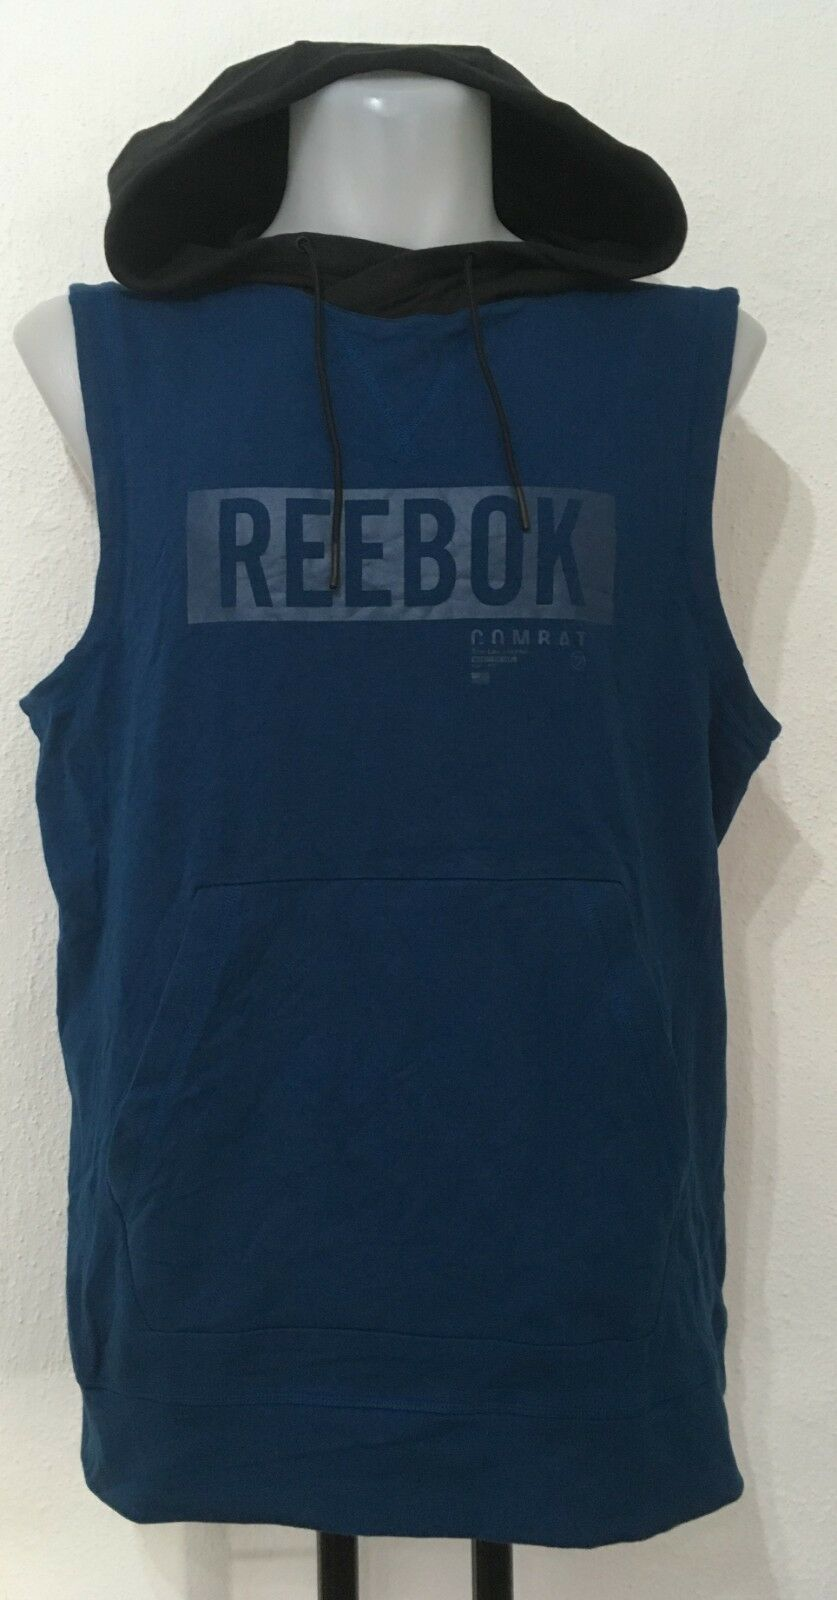 TURQUOISE COMBAT TRAIN LIKE A FIGHTER SLEEVELESS HOODIE BY REEBOK  MEN'S XXL